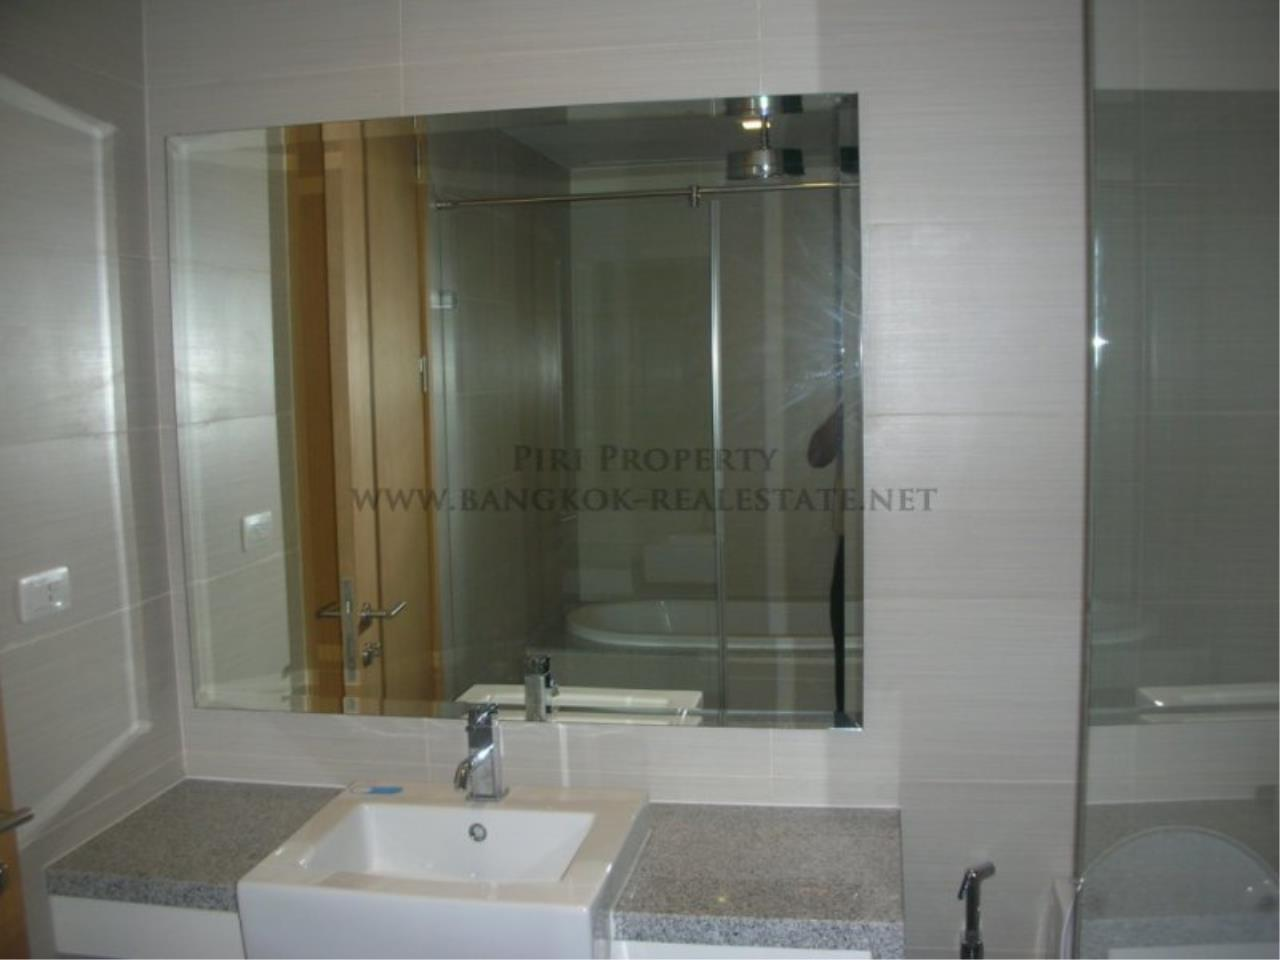 Piri Property Agency's 1 Bedroom - Millennium Residence - High Floor - Foreign Quota 8